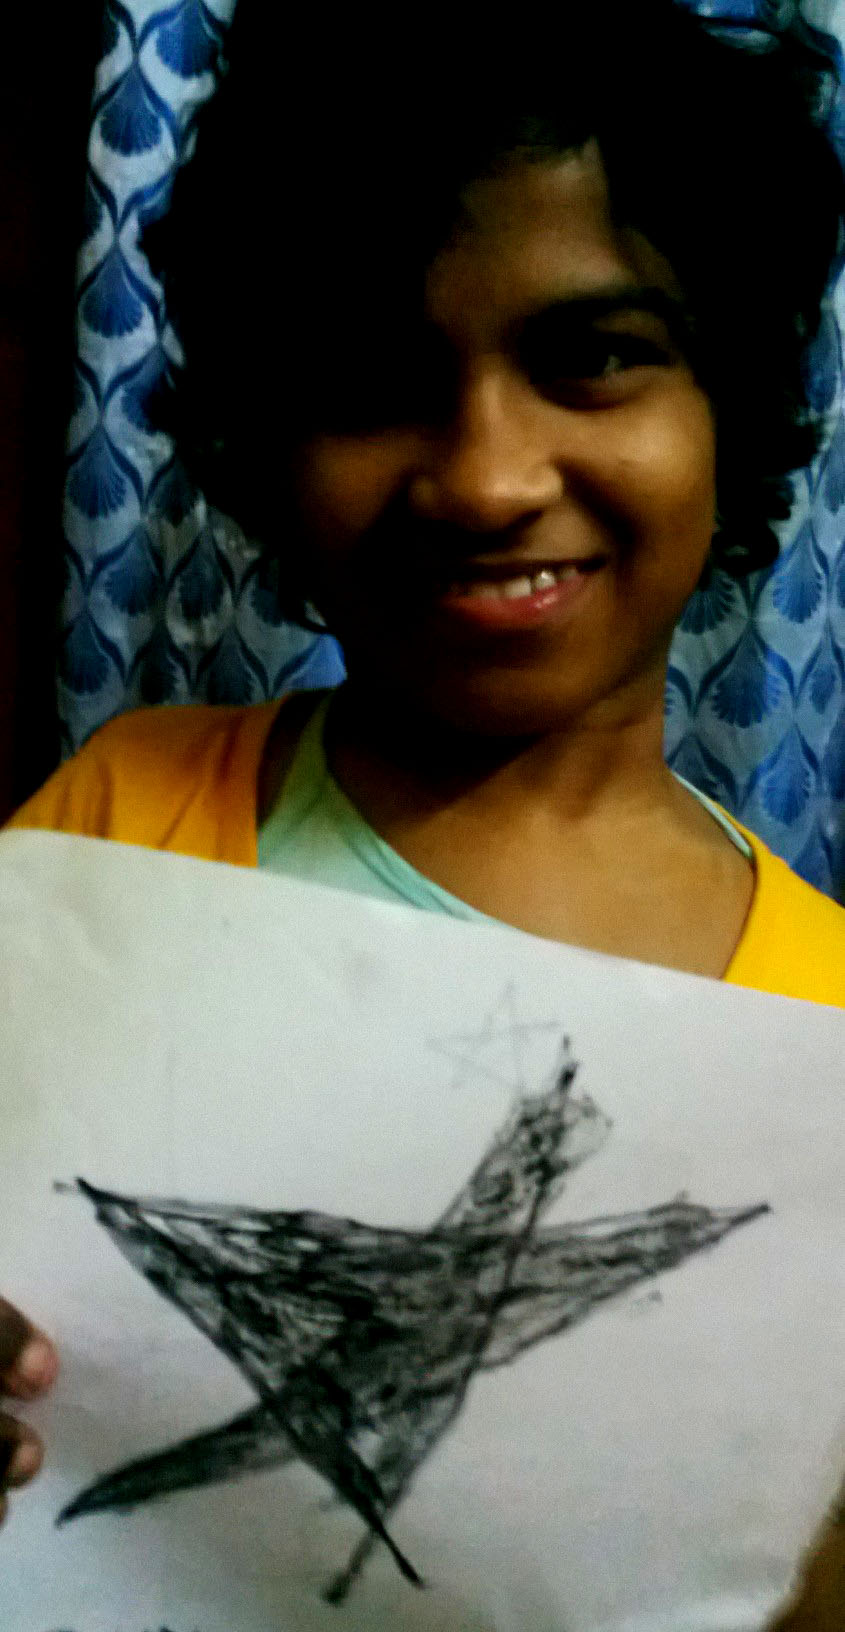 shuktara - Prity Blackstar art project